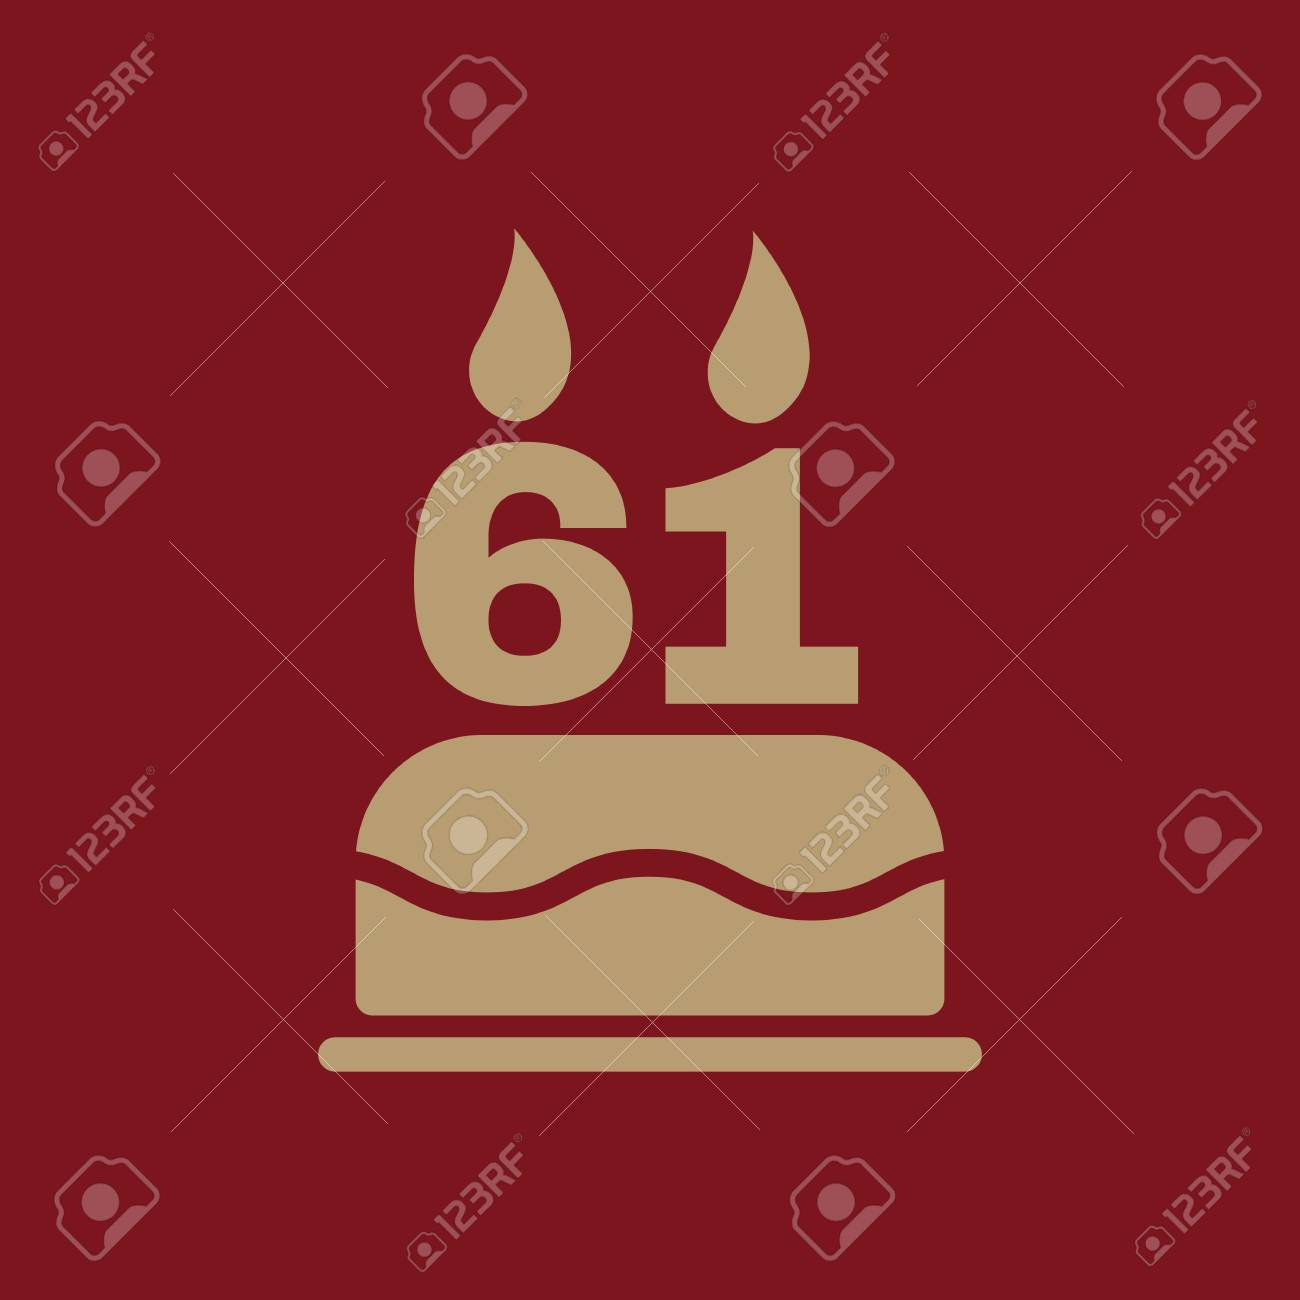 The Birthday Cake With Candles In The Form Of Number 61 Icon